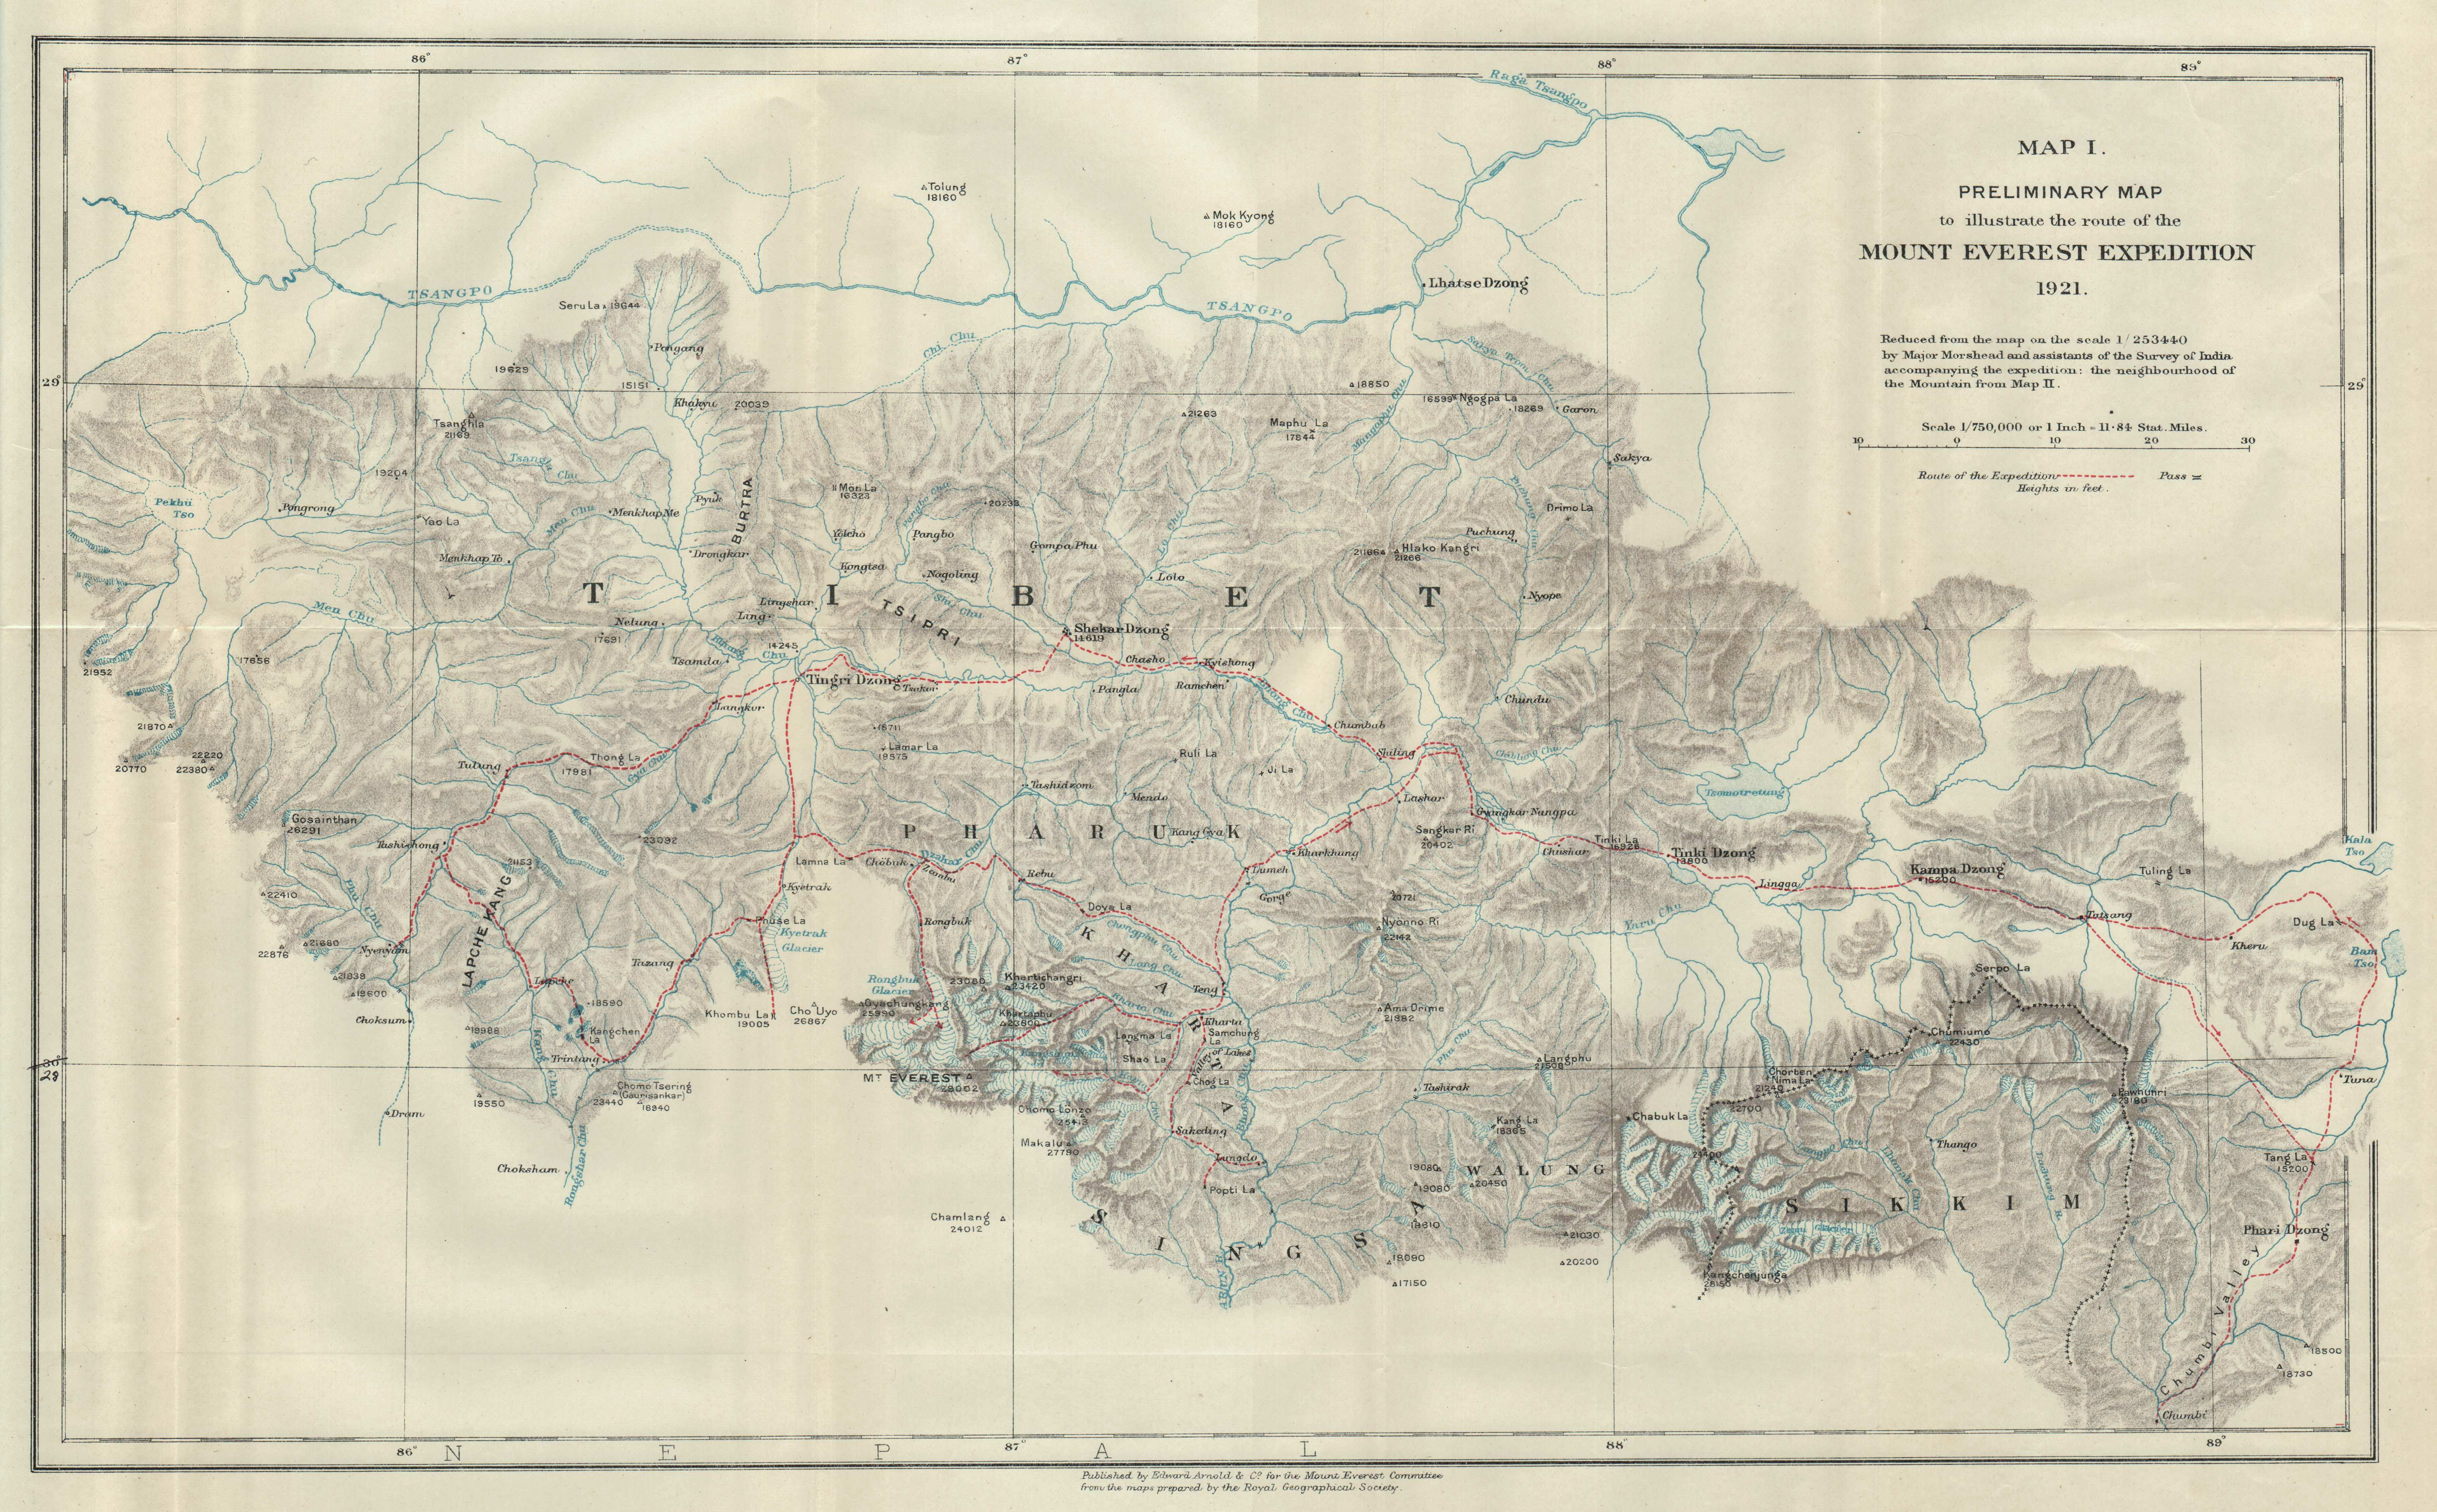 File:Preliminary map of Mount Everest Expedition, 1921. Map I.jpg ...